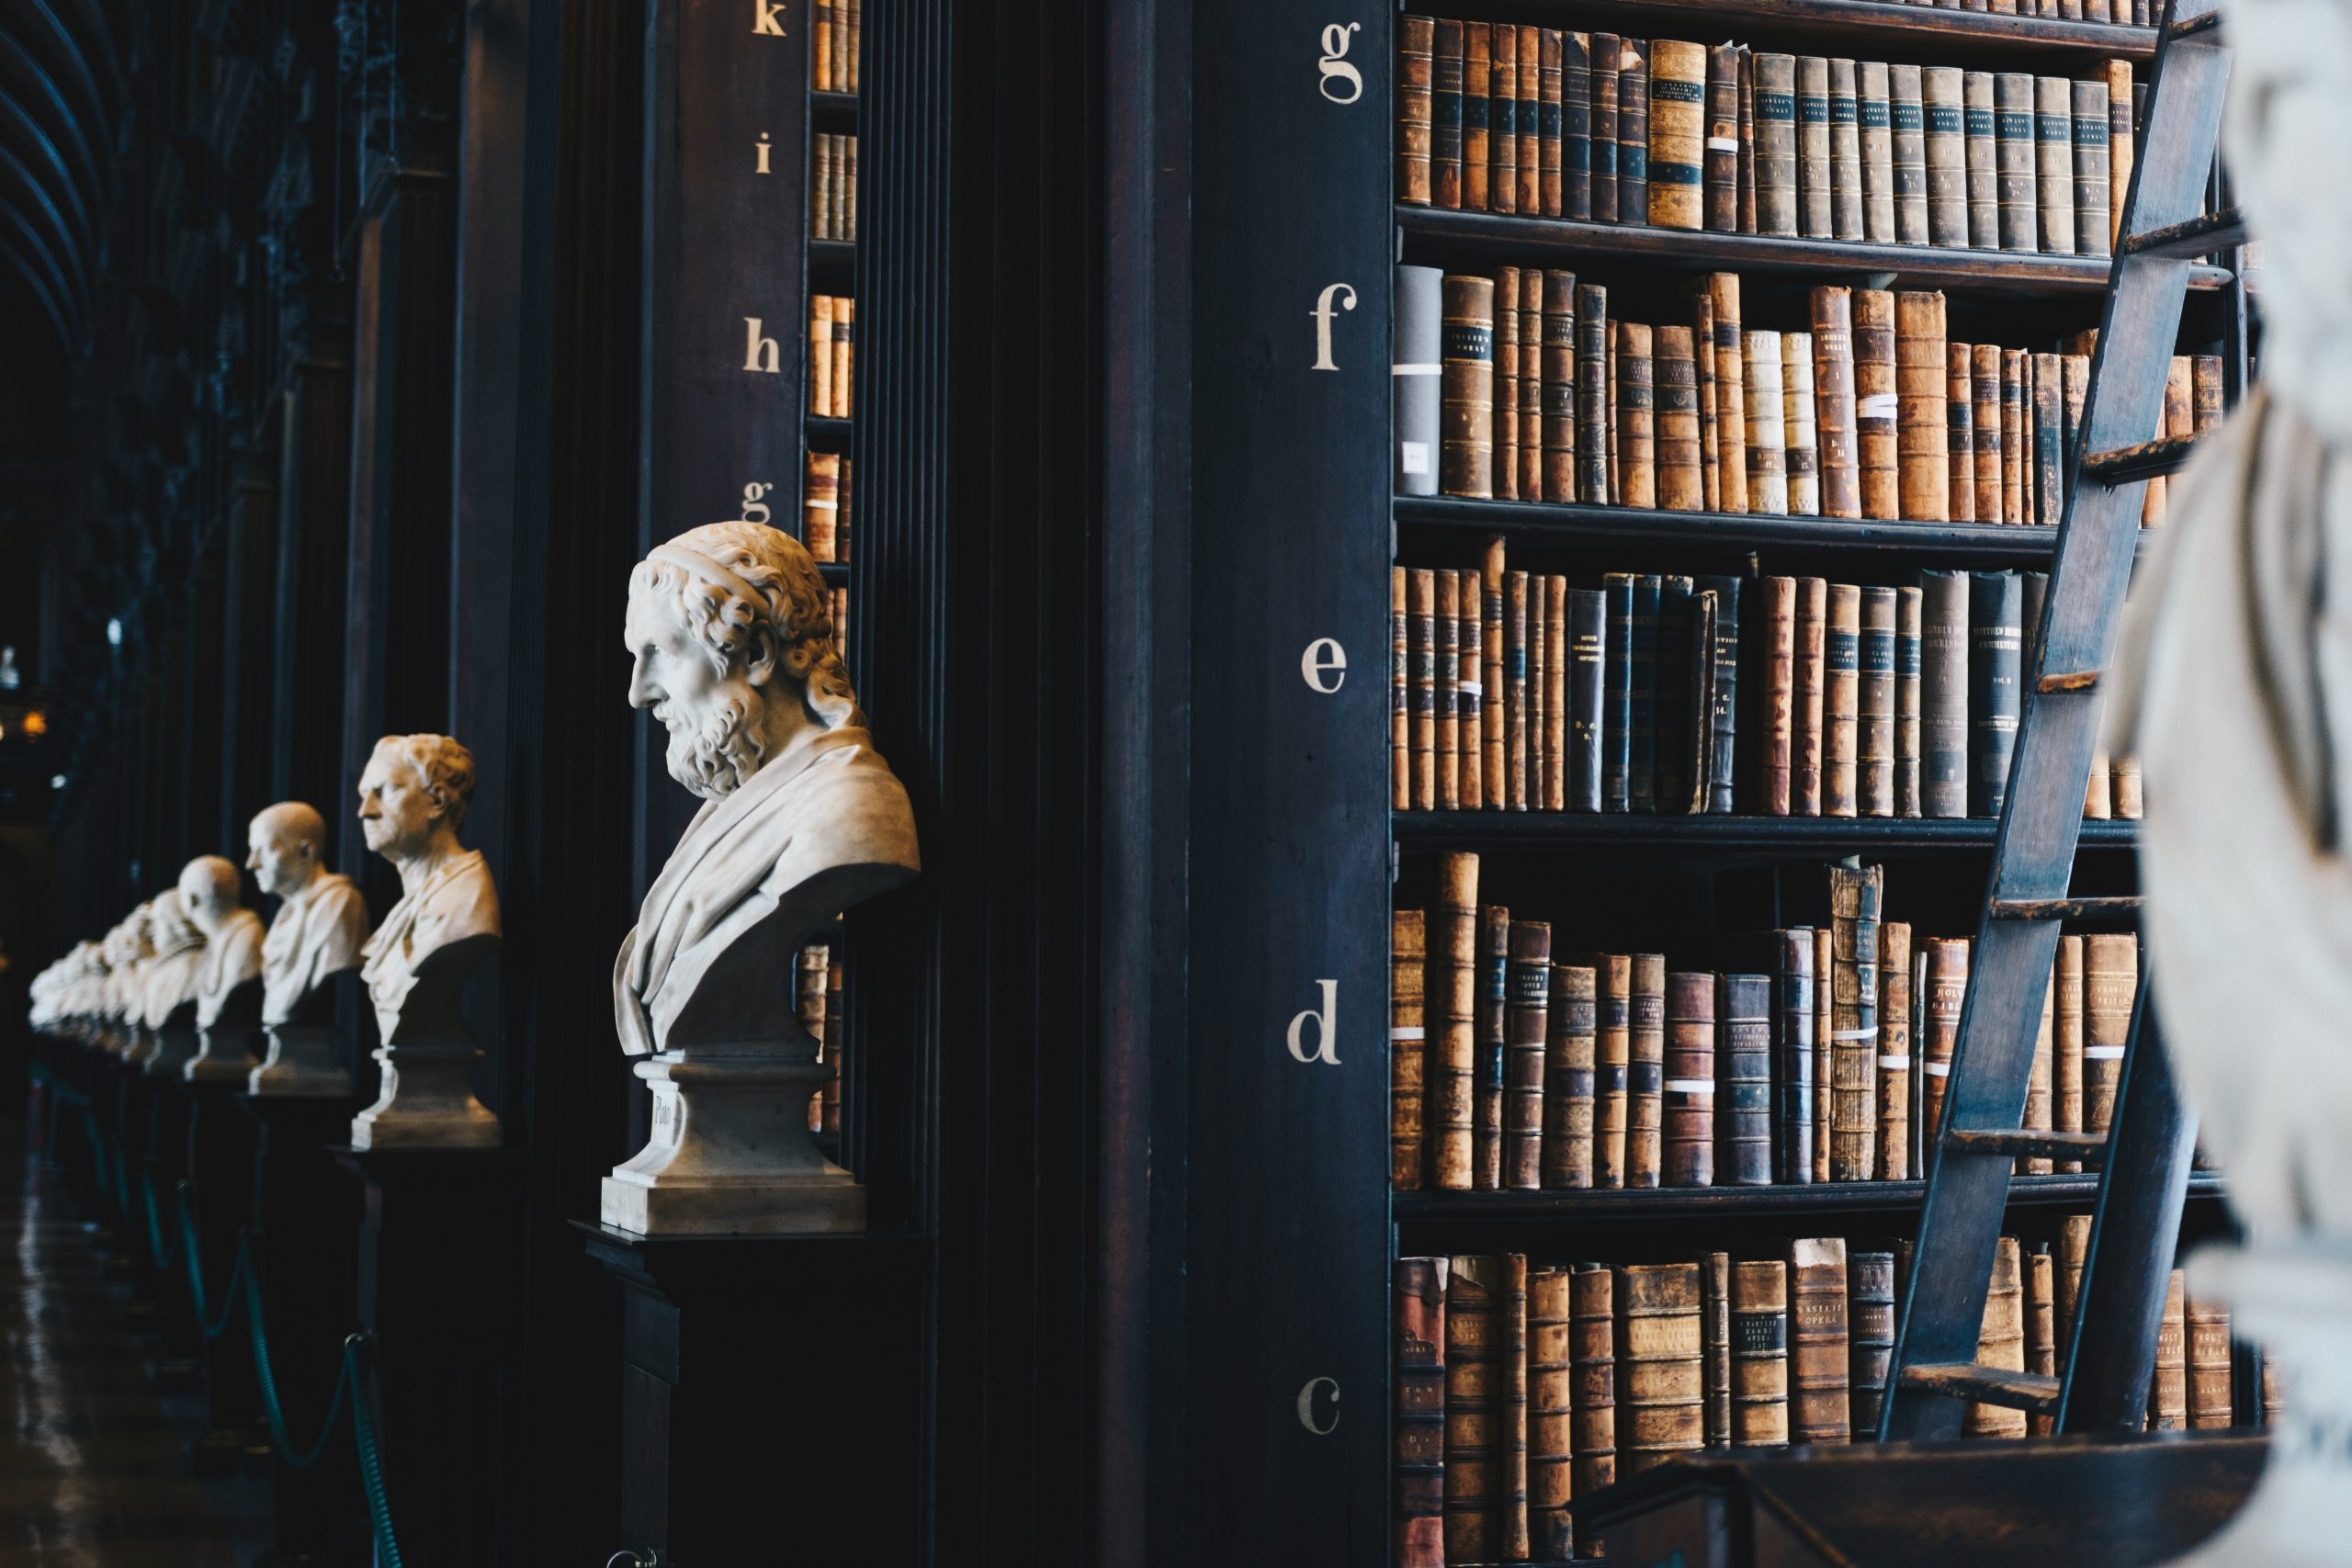 View of a library shelf with old books and bust sculptures of historical figures